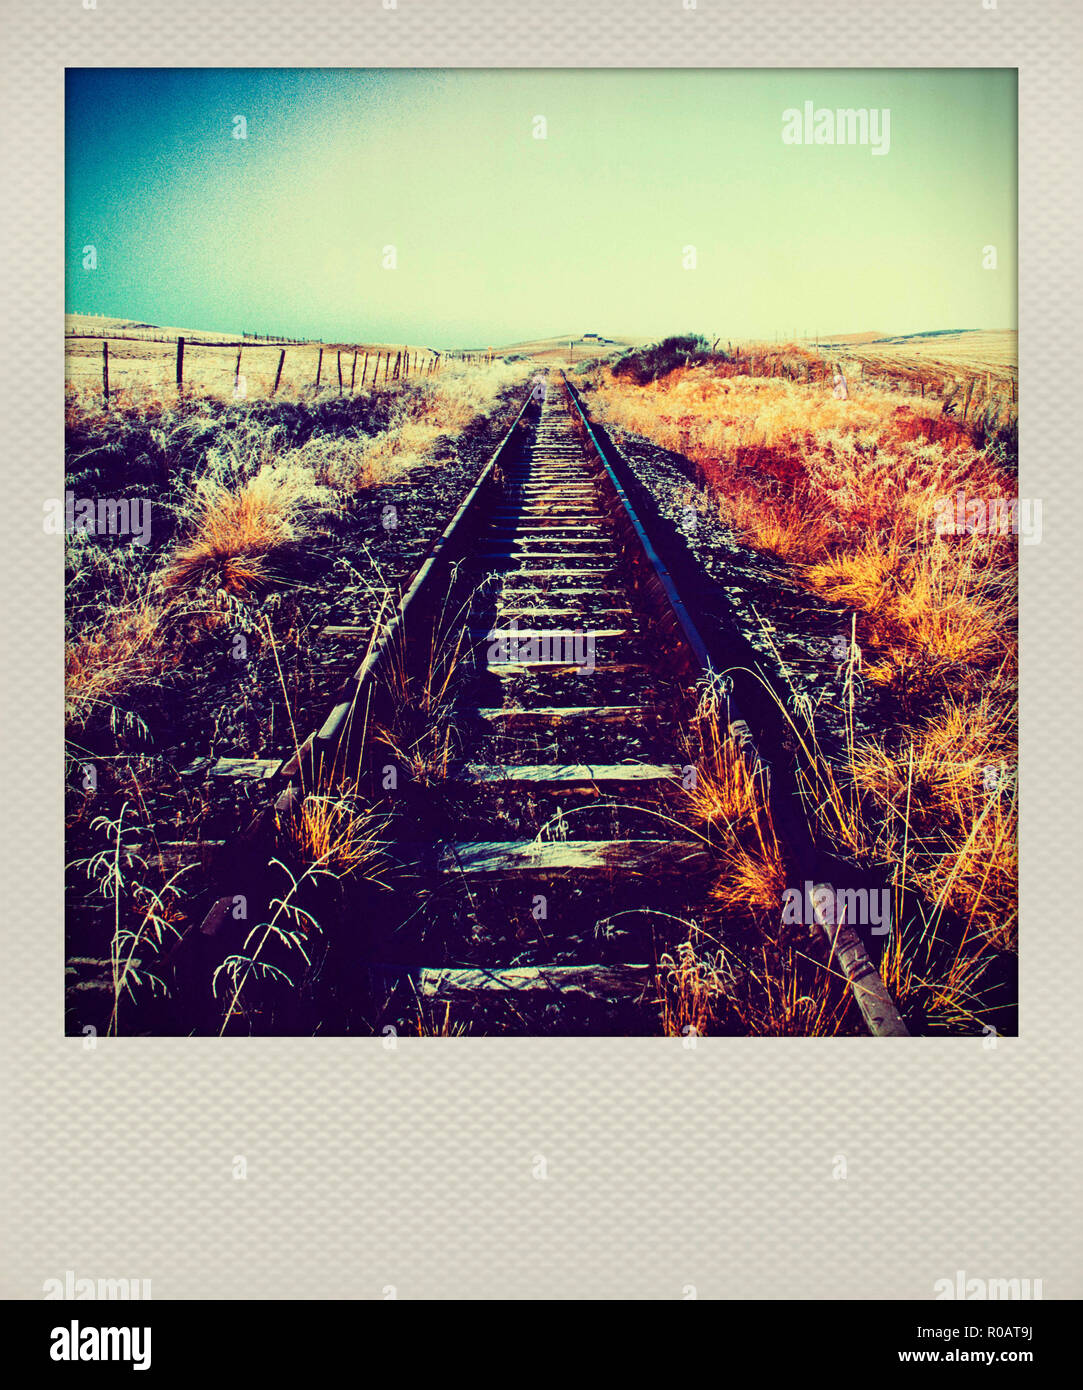 Polaroid of abandoned rail track in Auvergne, France - Stock Image